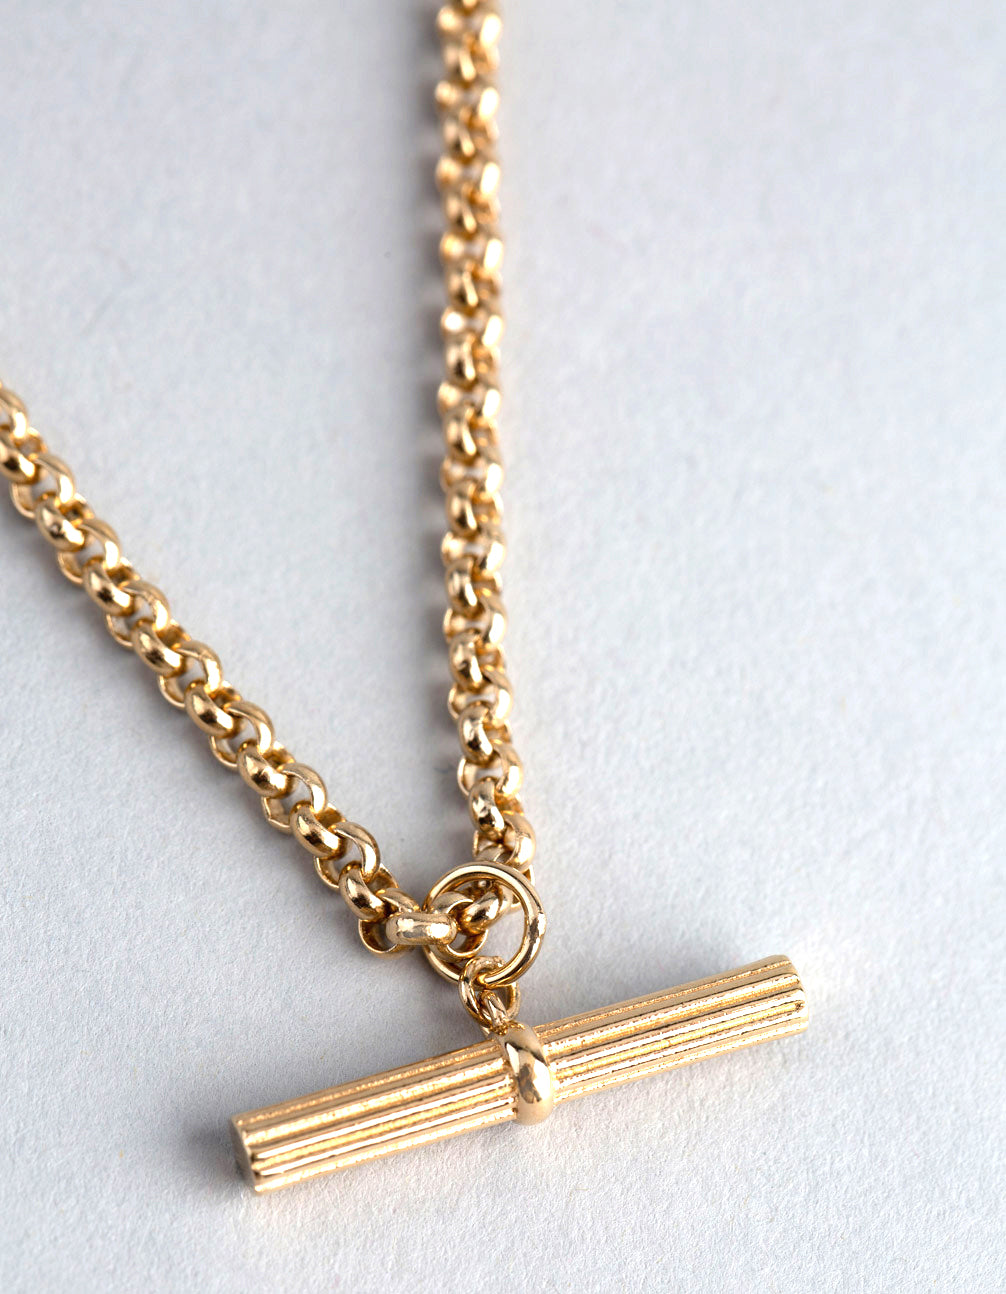 Gold Plated Sterling Silver Rolo Chain Fob Necklace